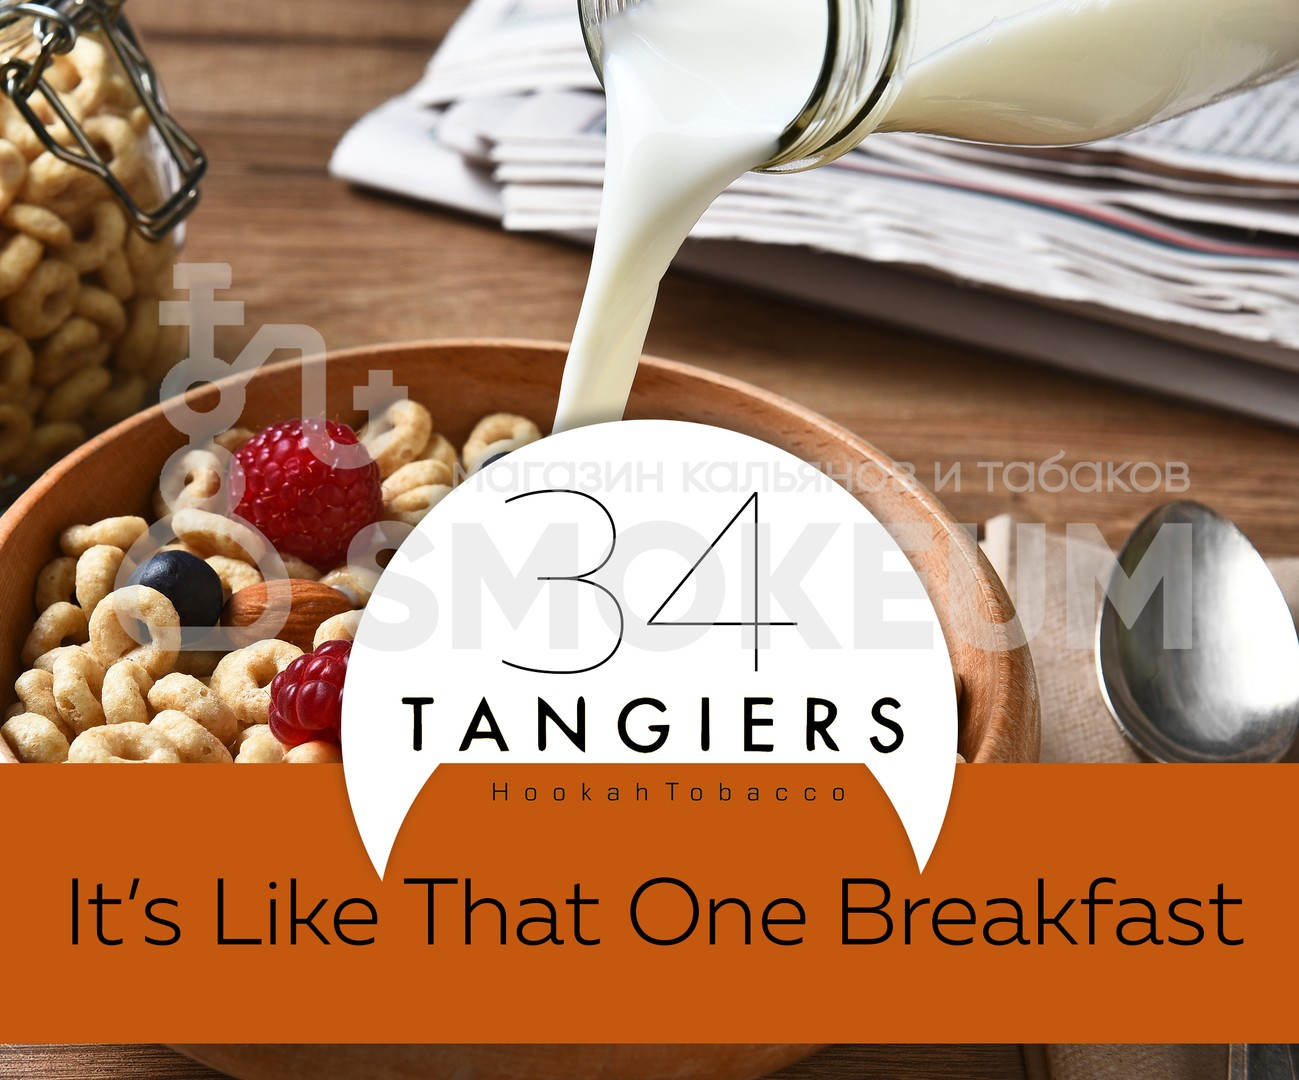 Табак Tangiers - Its Like That One Breakfast Special Edition (Хлопья на завтрак) 250 гр